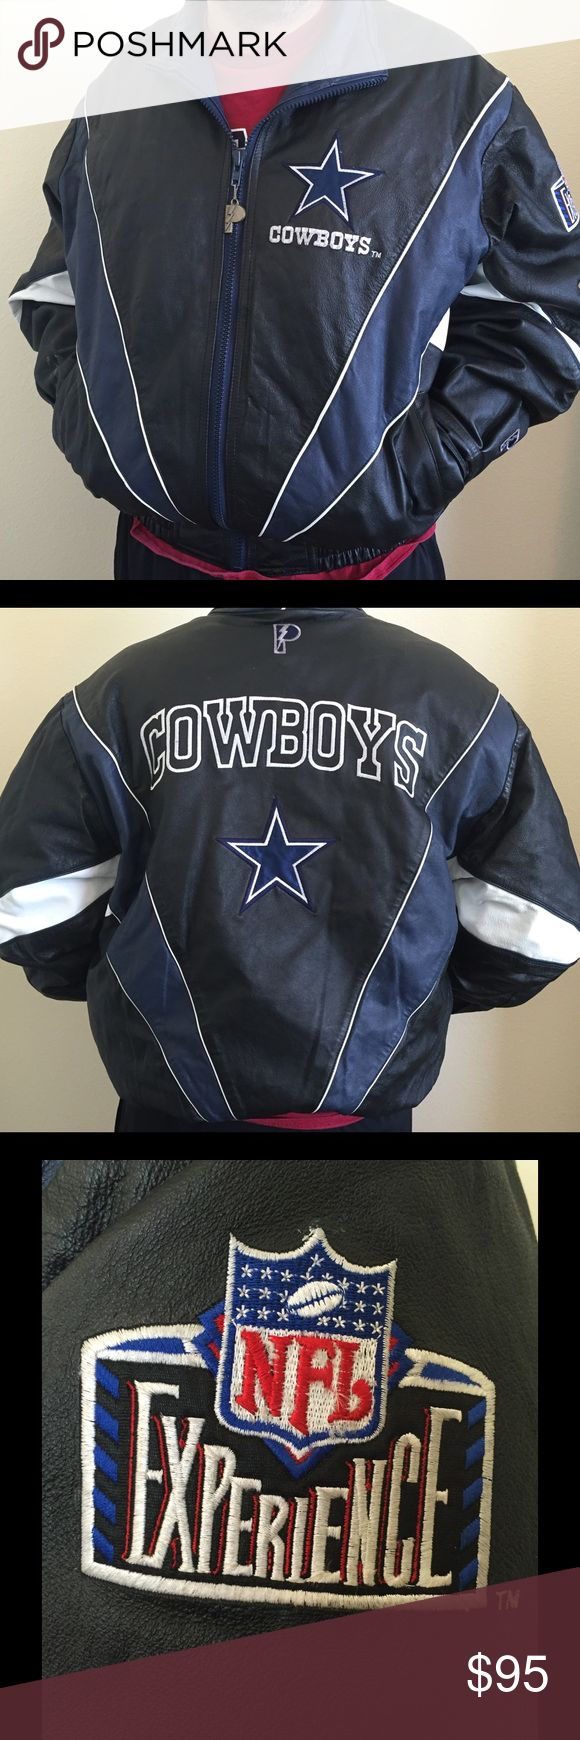 Dallas Cowboy Leather Jacket Dallas Cowboy Leather Jacket from Pro Layer size XL *price is firm, because it is $80 on ♏️ercari* Jackets & Coats